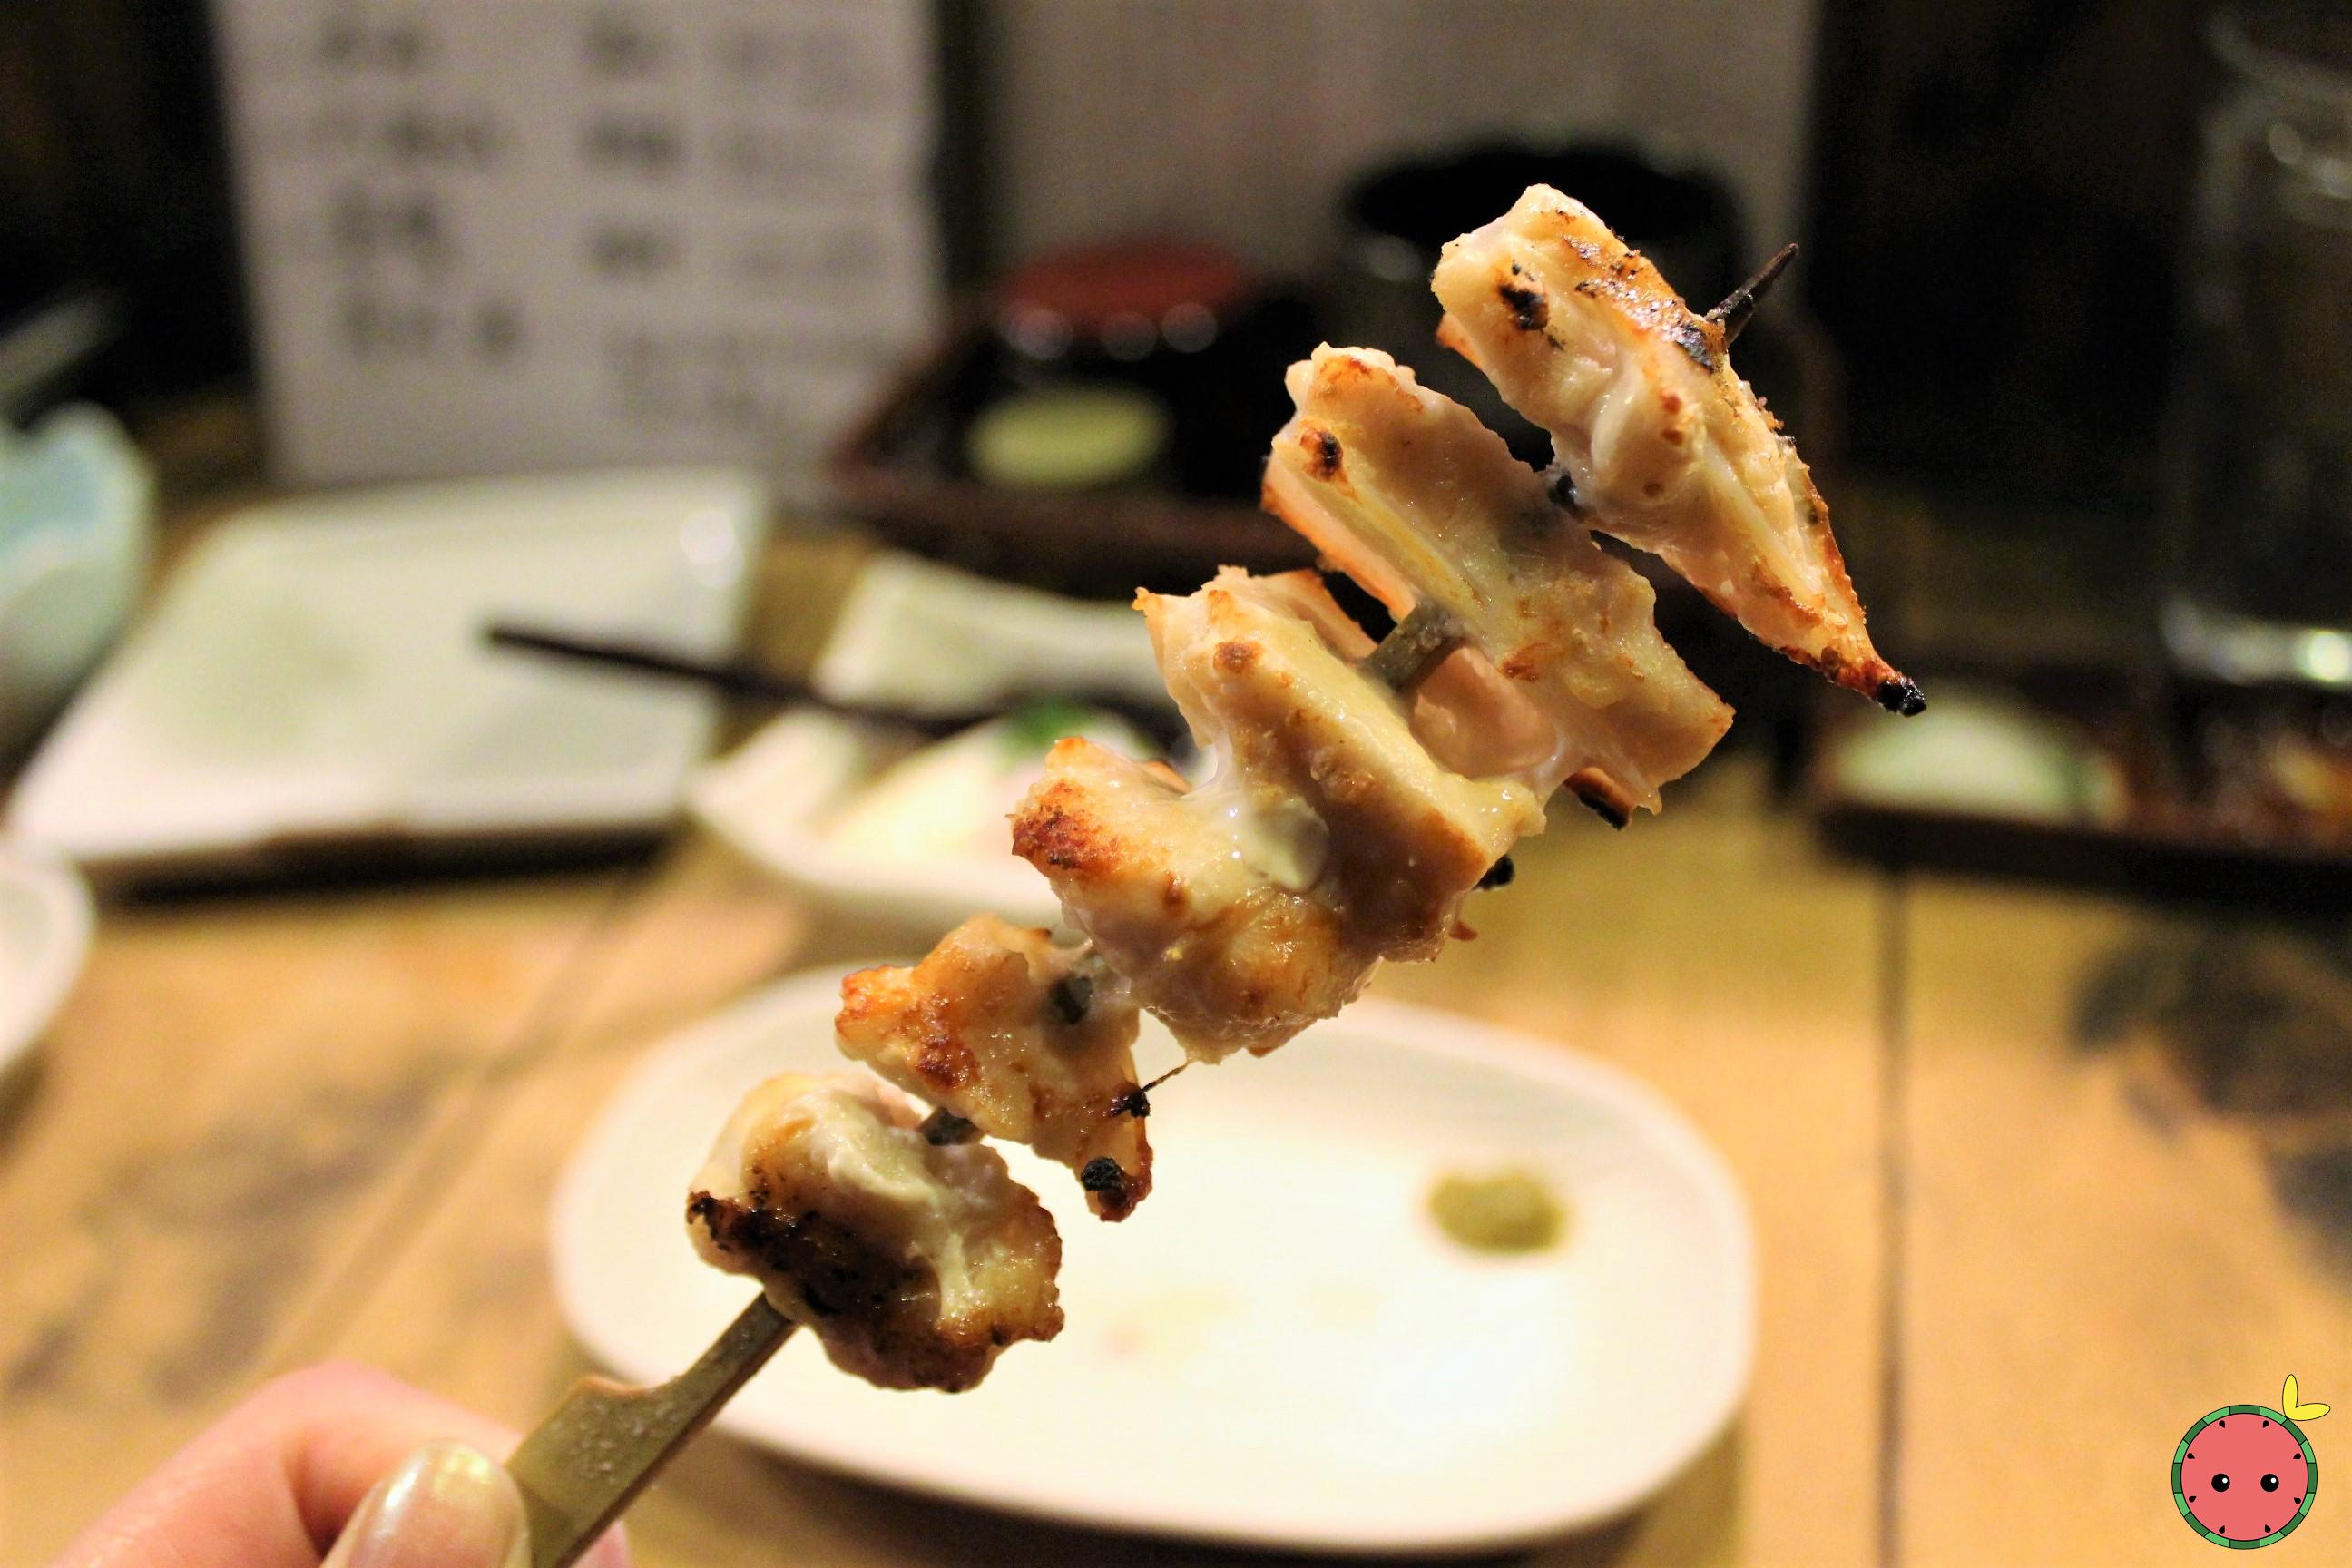 Nankotsu - Chicken Pieces with Soft Bone